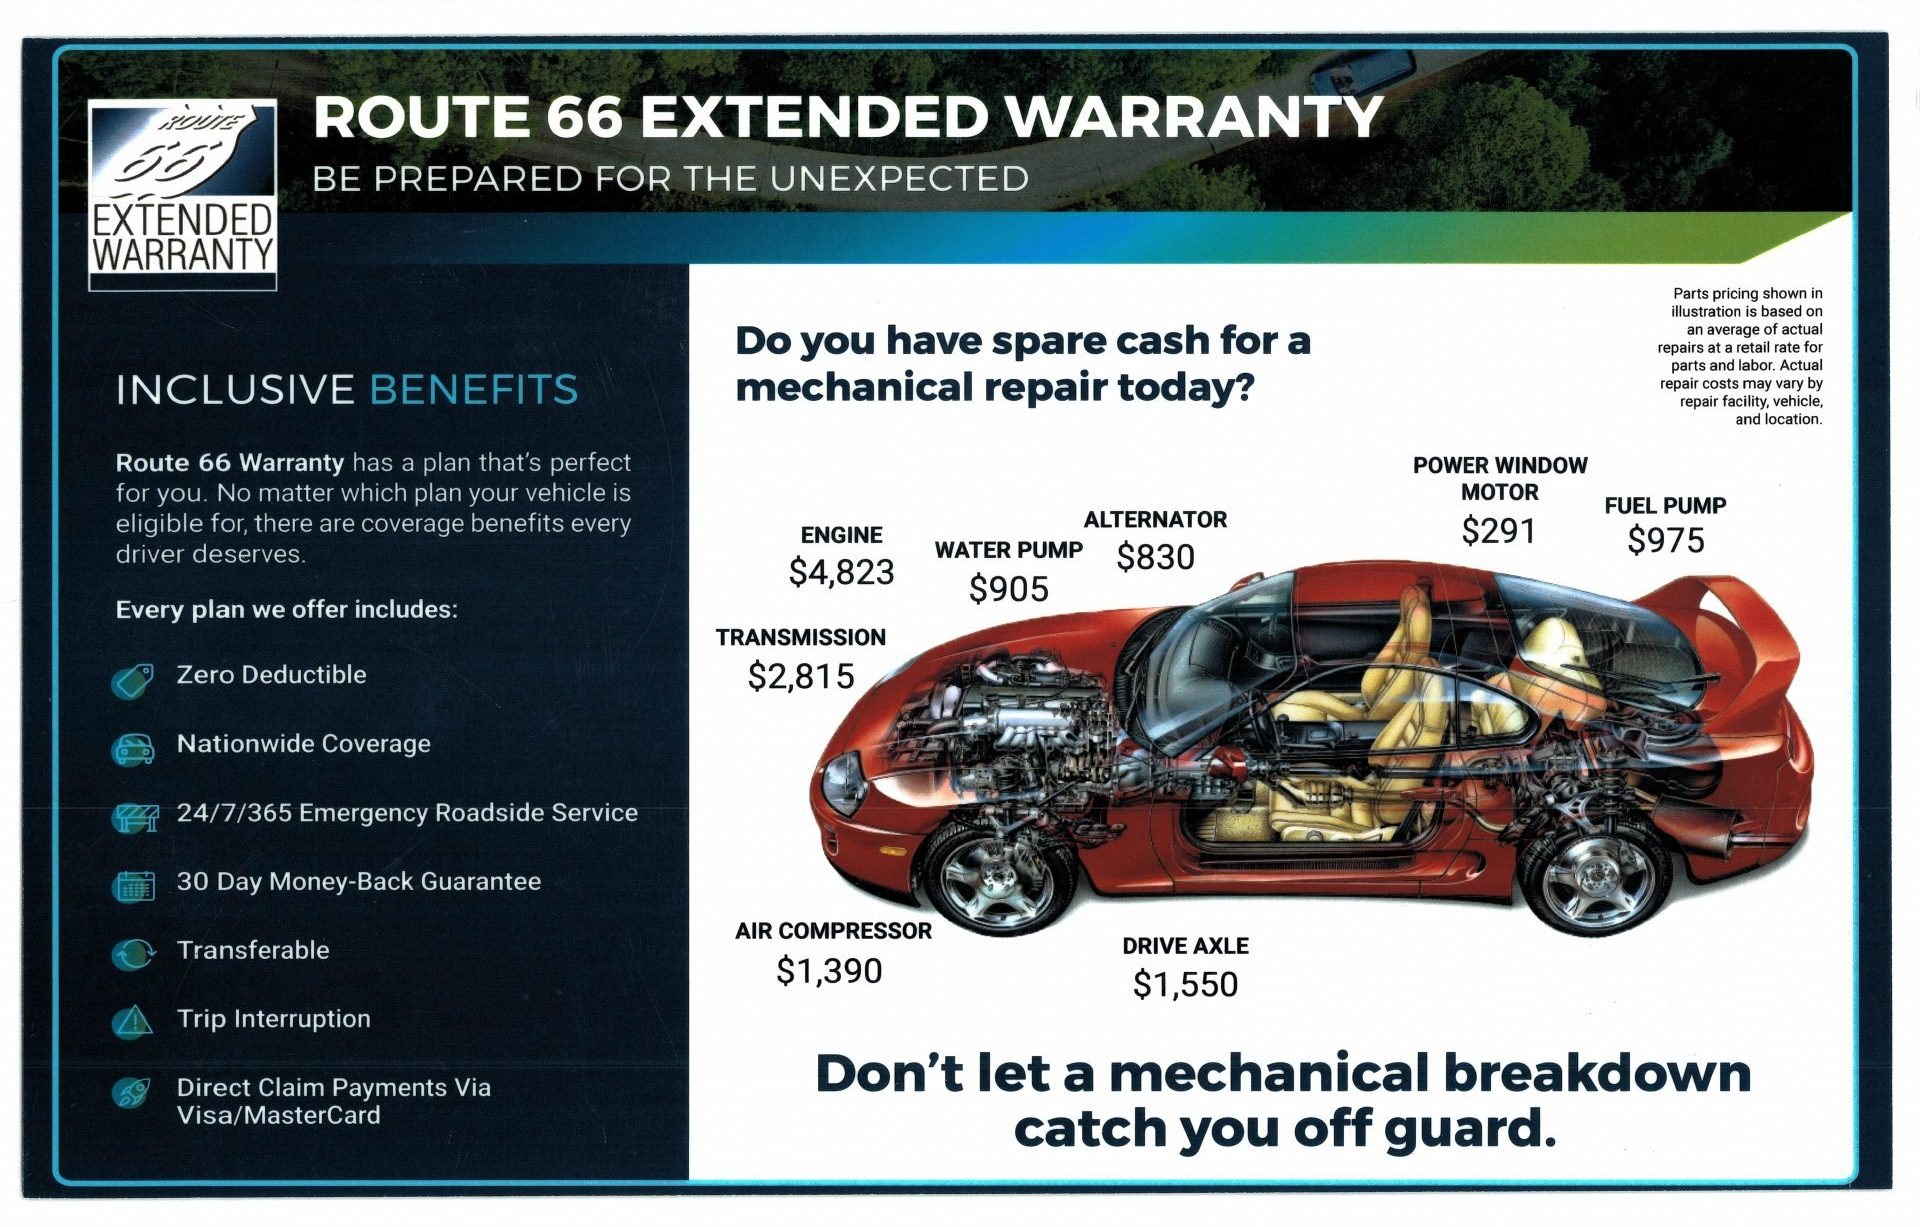 ROUTE 66 VEHICLE EXTENDED WARRANTY